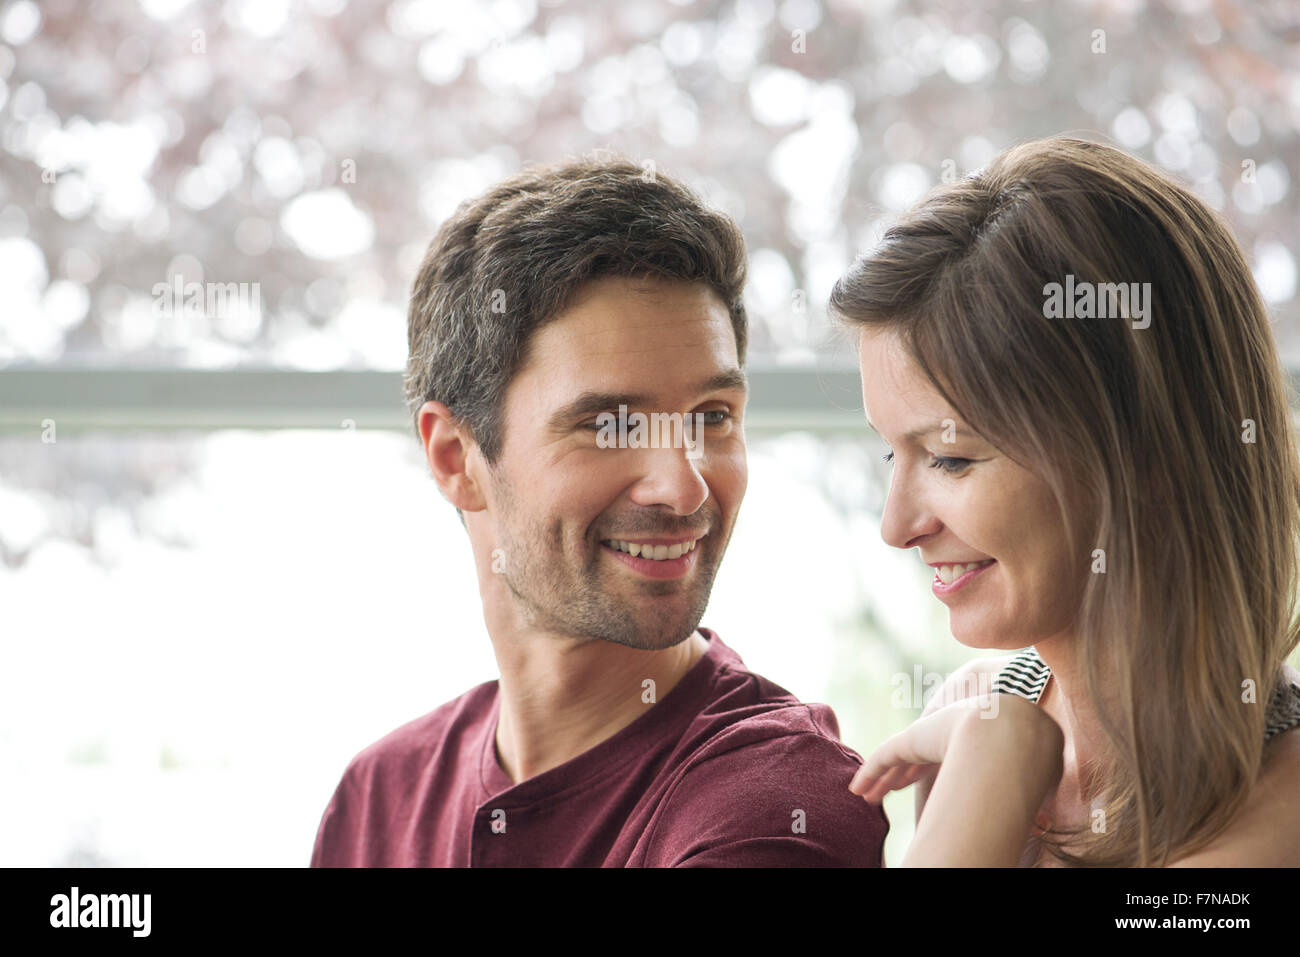 Couple smiling together Photo Stock